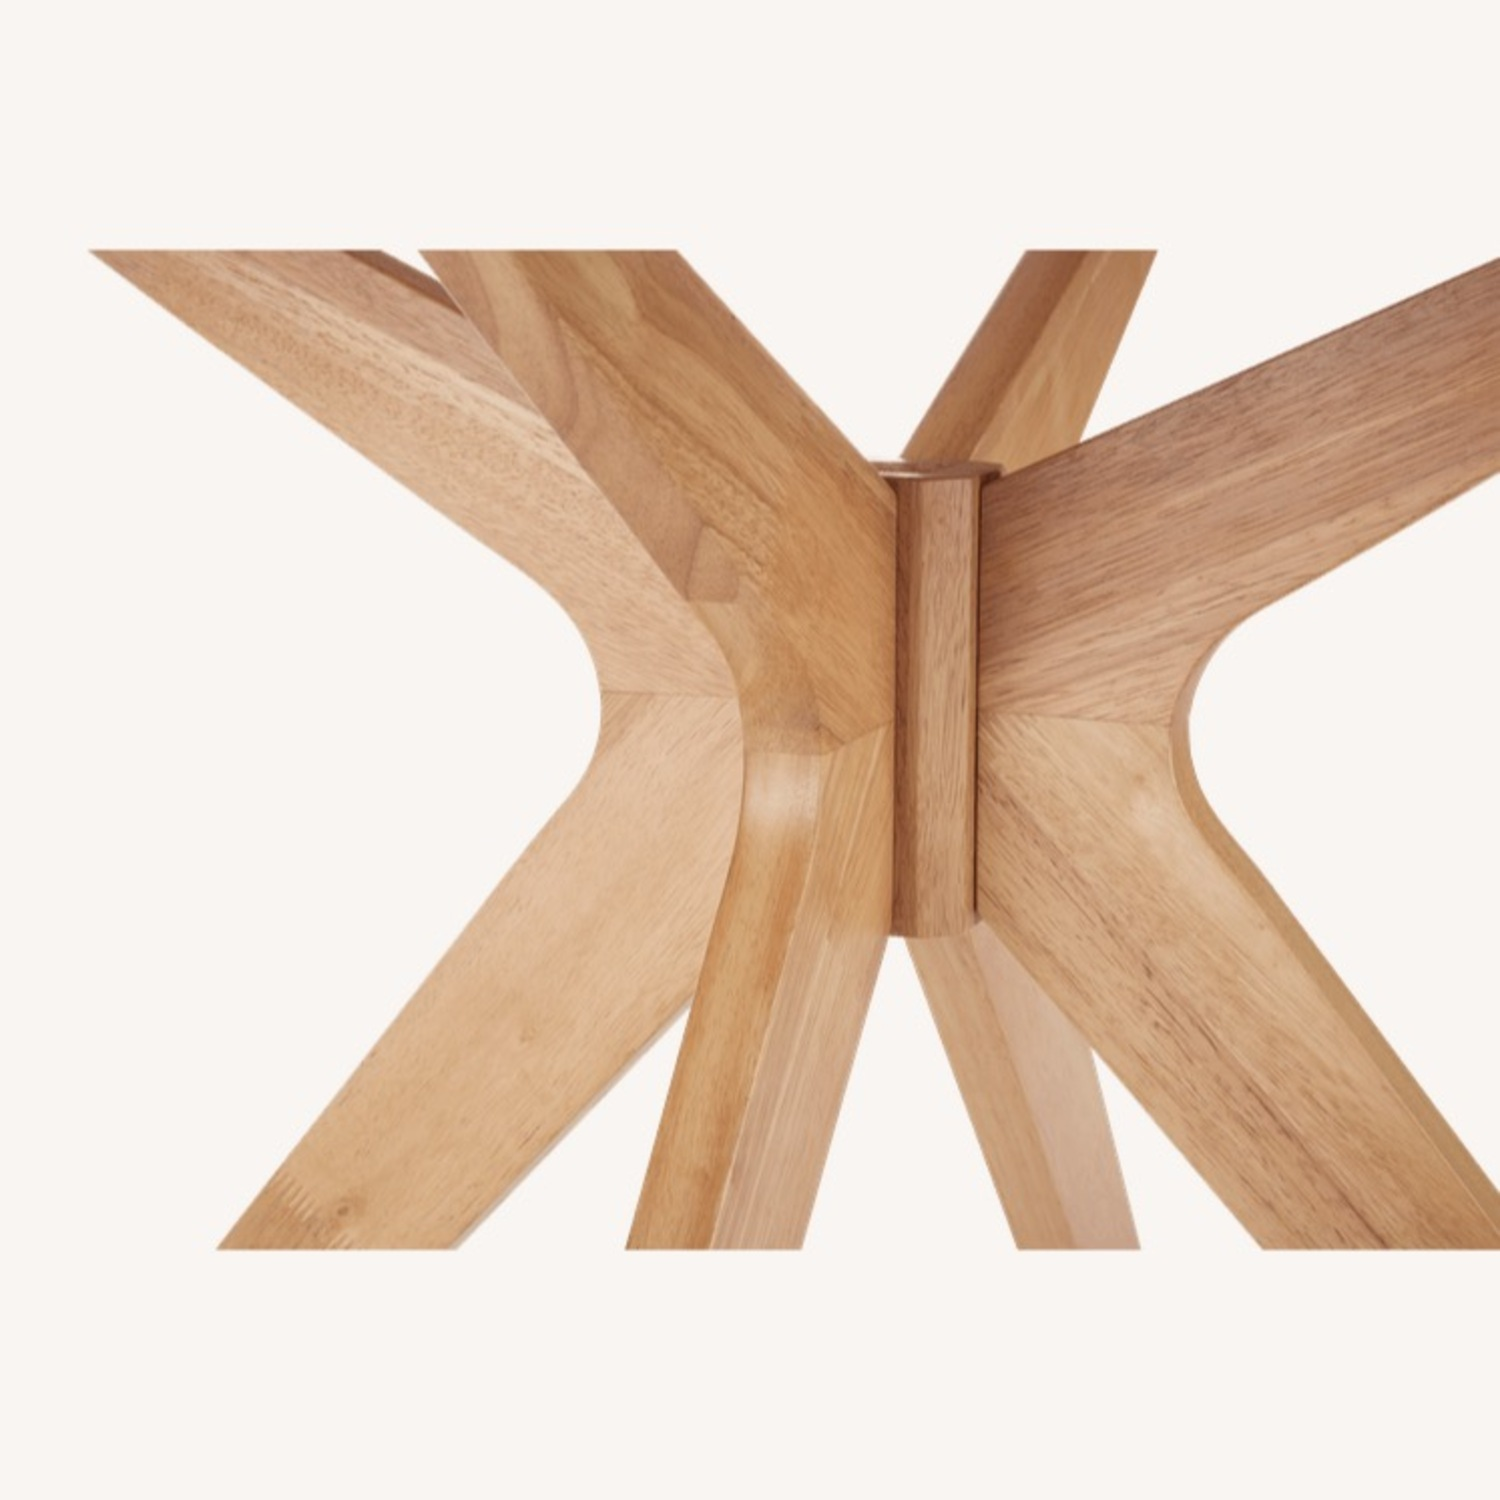 Scandinavian Stlye Dining Table and Chairs - image-2